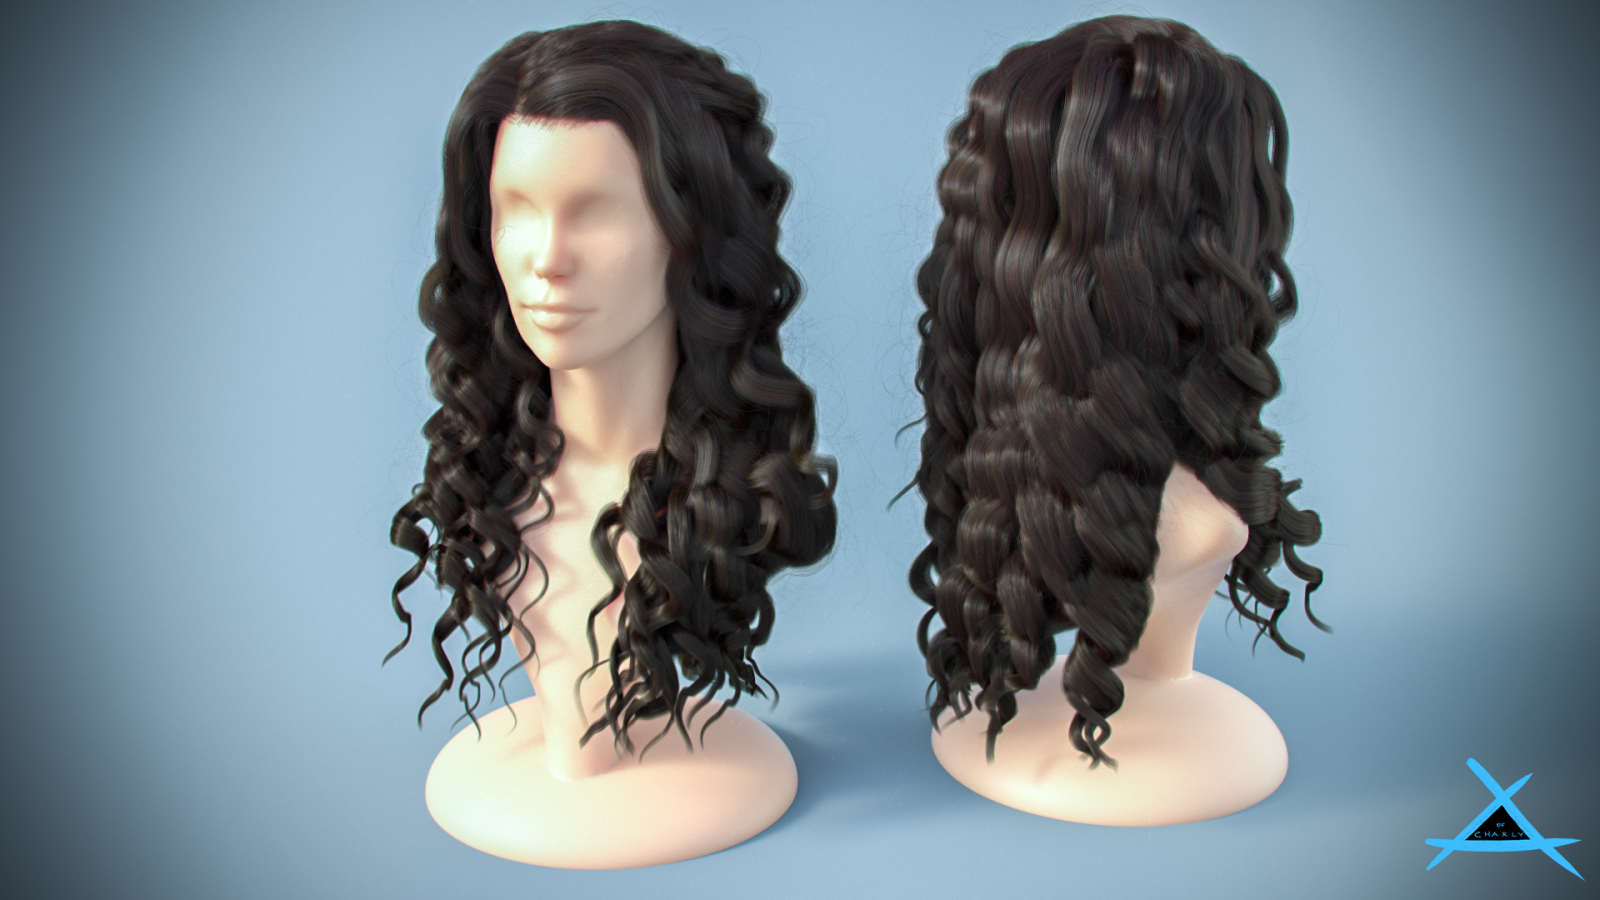 Girl hair render ( Type 2) - Vray